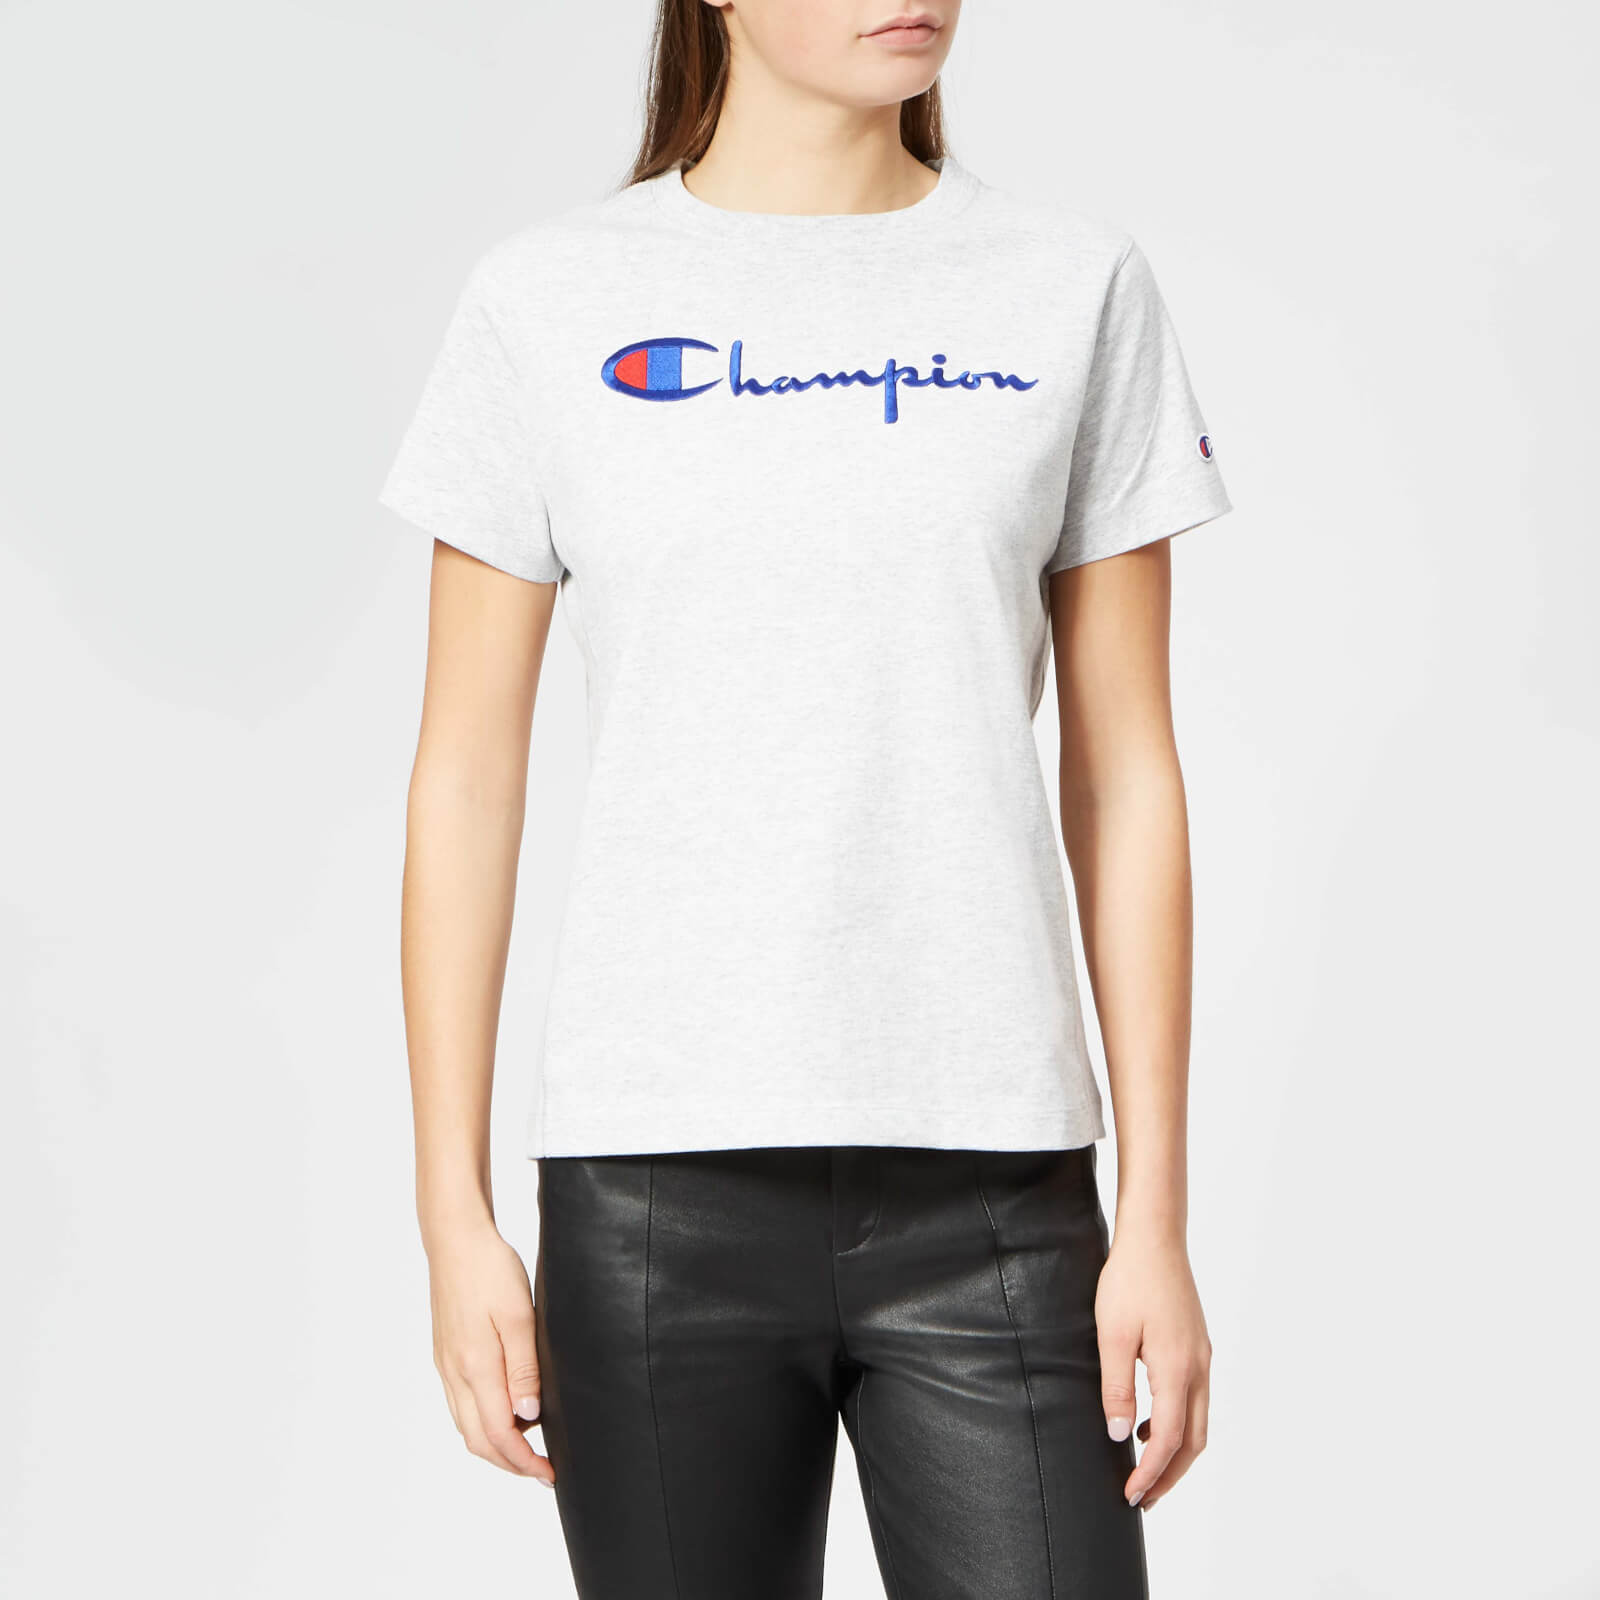 4952893c Champion Women's Crew Neck T-Shirt - Grey - Free UK Delivery over £50